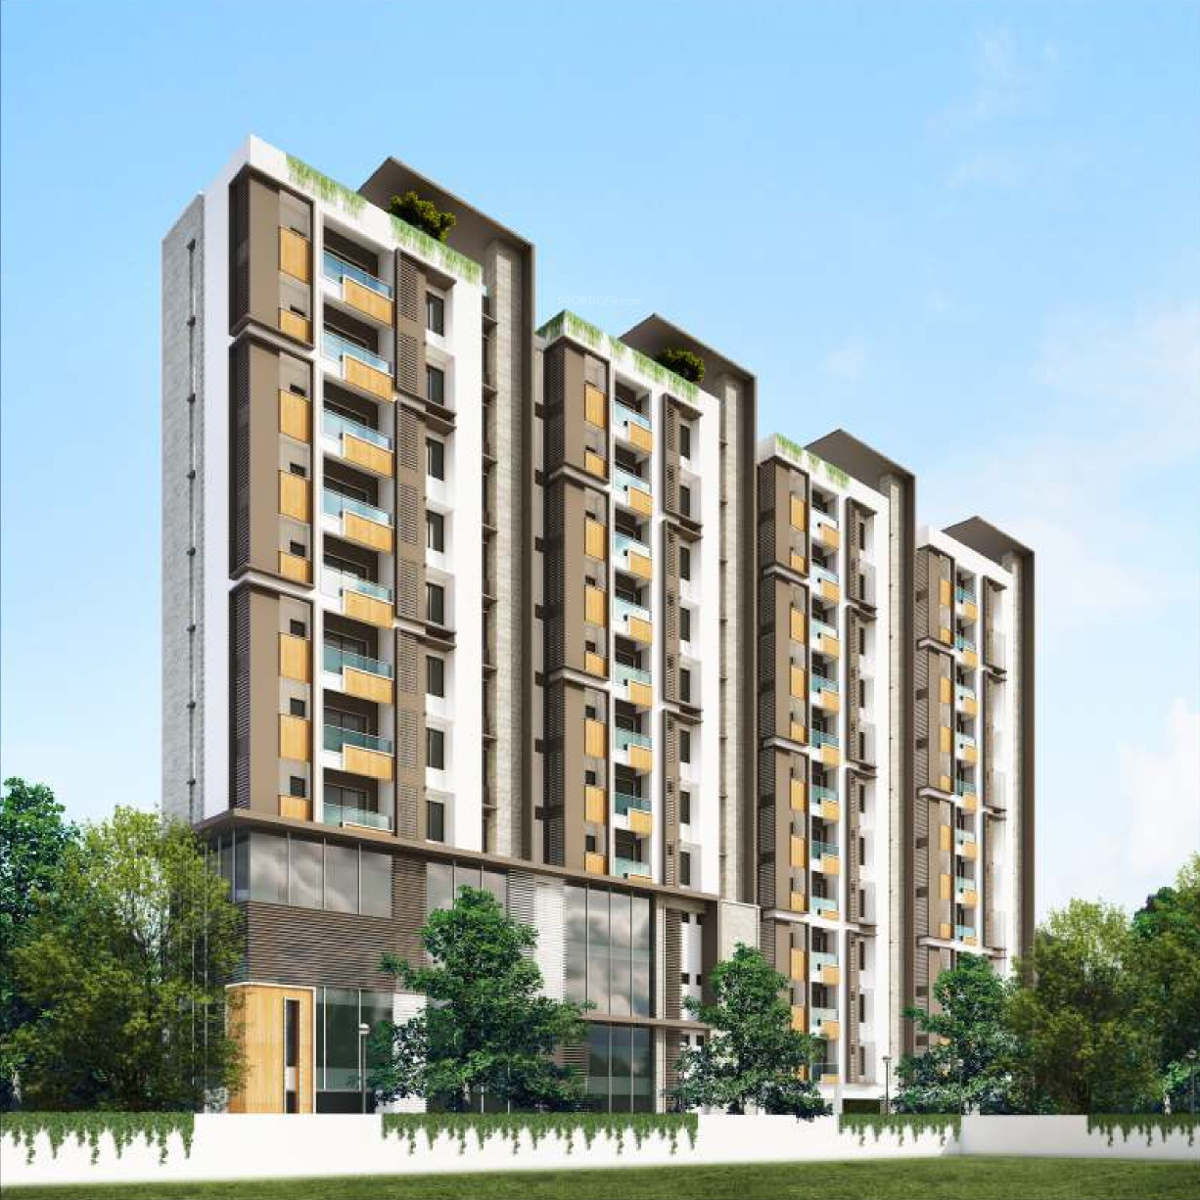 Ninety Degrees Apartments: 1282 Sq Ft 3 BHK 3T Apartment For Sale In DRA 90 Degrees